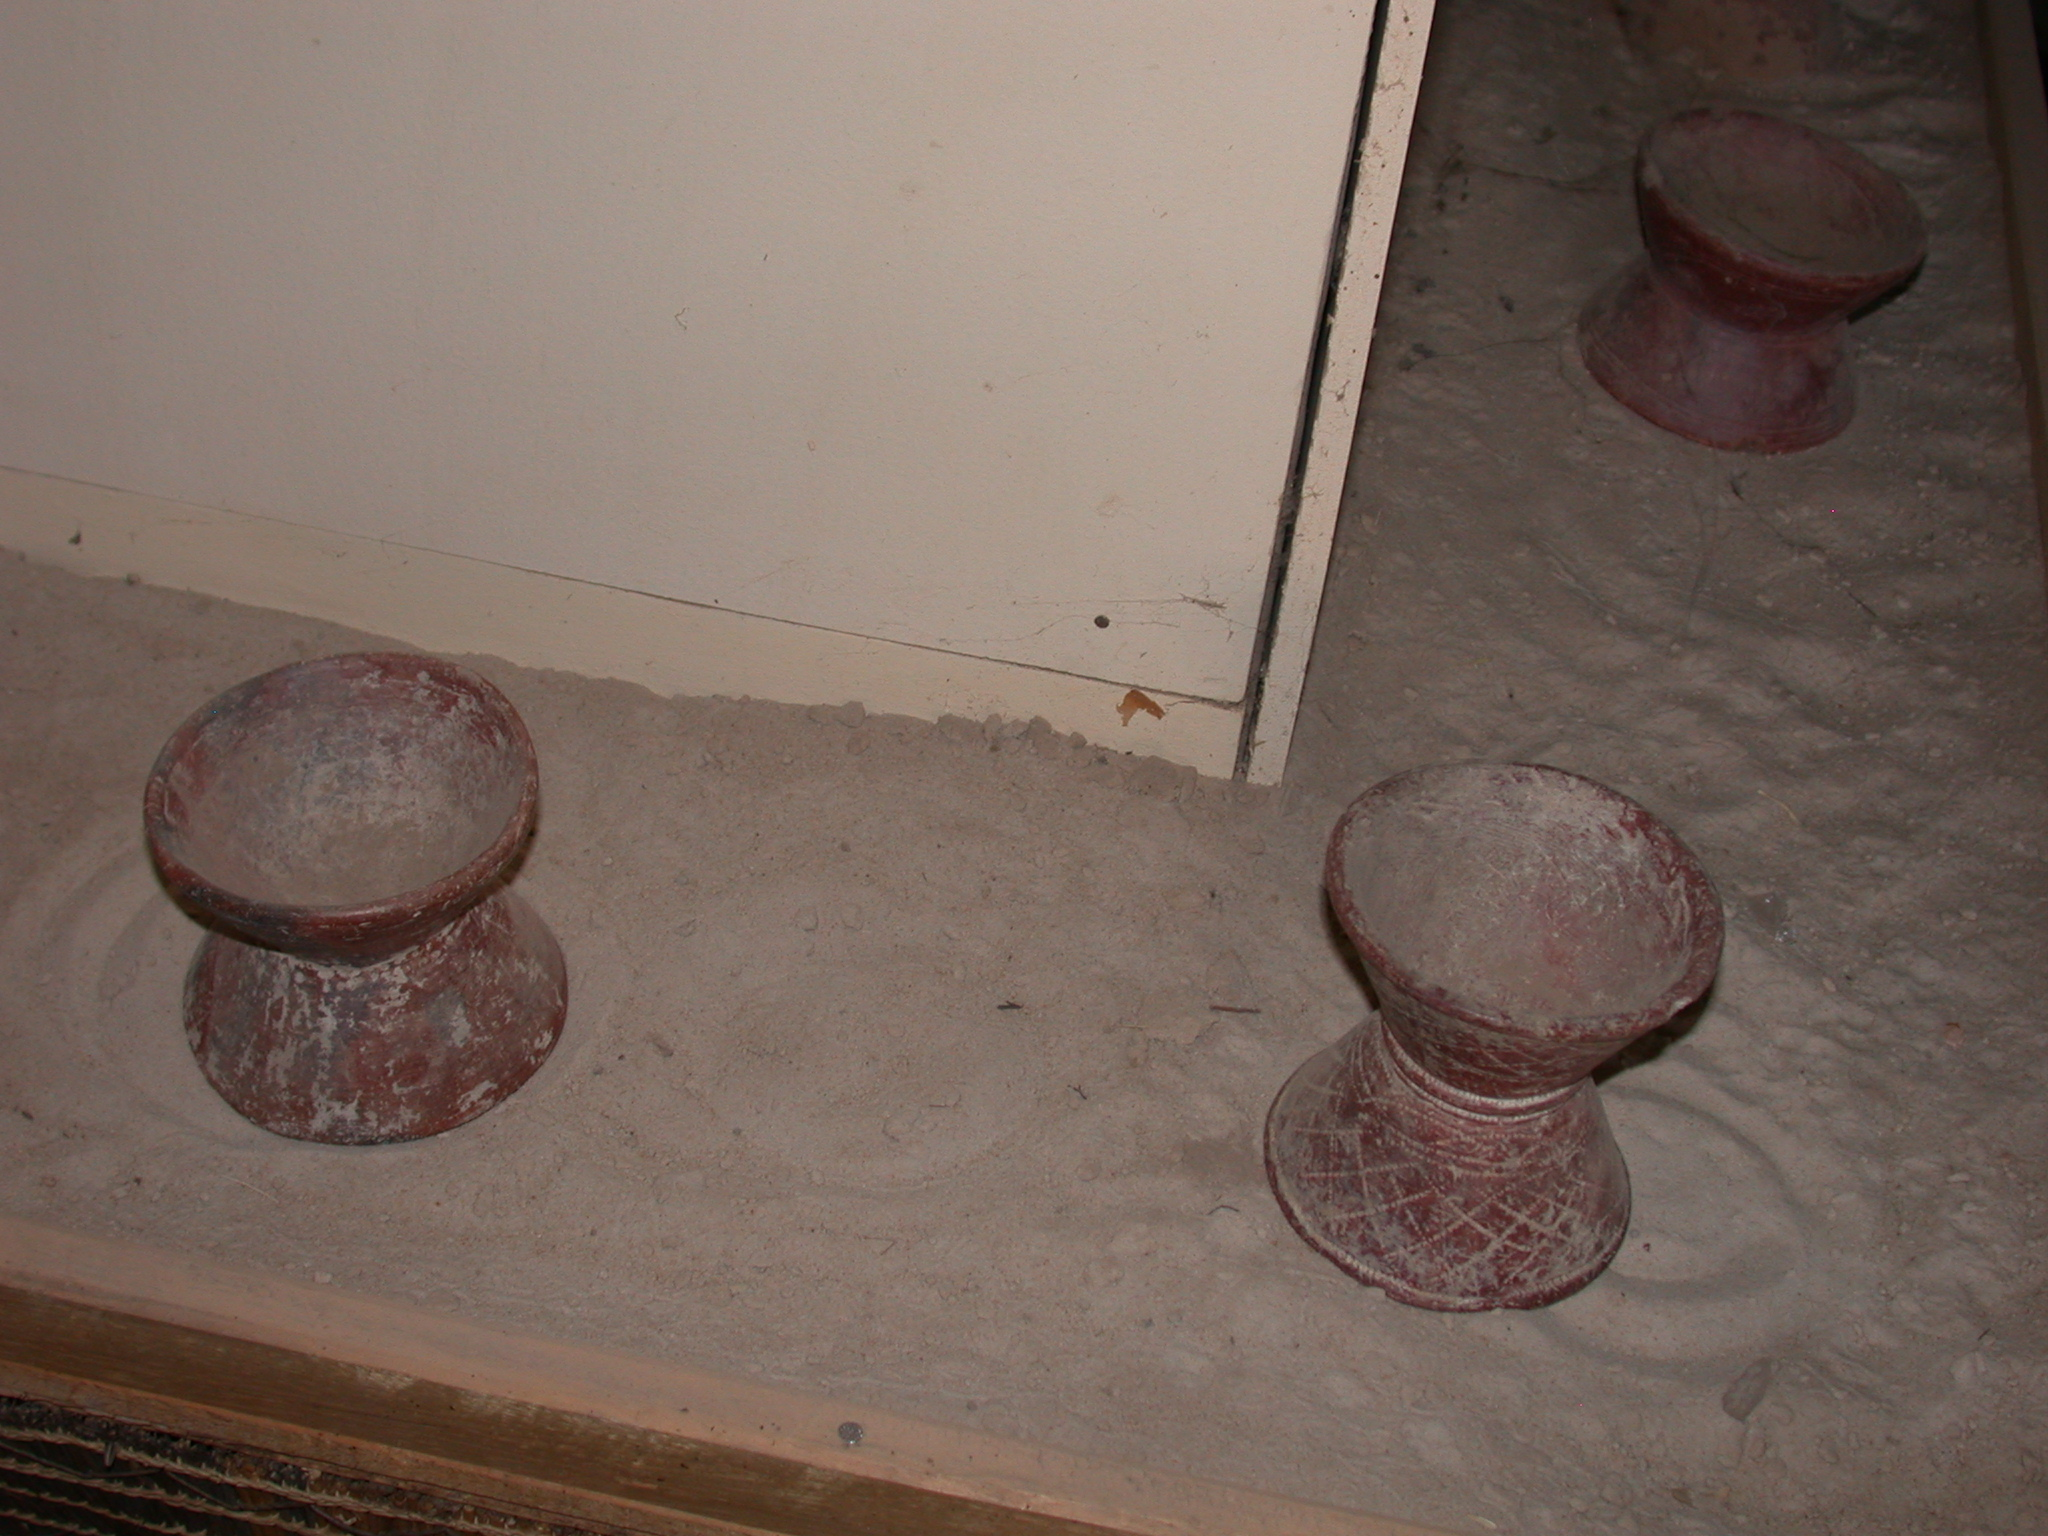 Probably Mortars, Timbuktu Ethnological Museum, Timbuktu, Mali